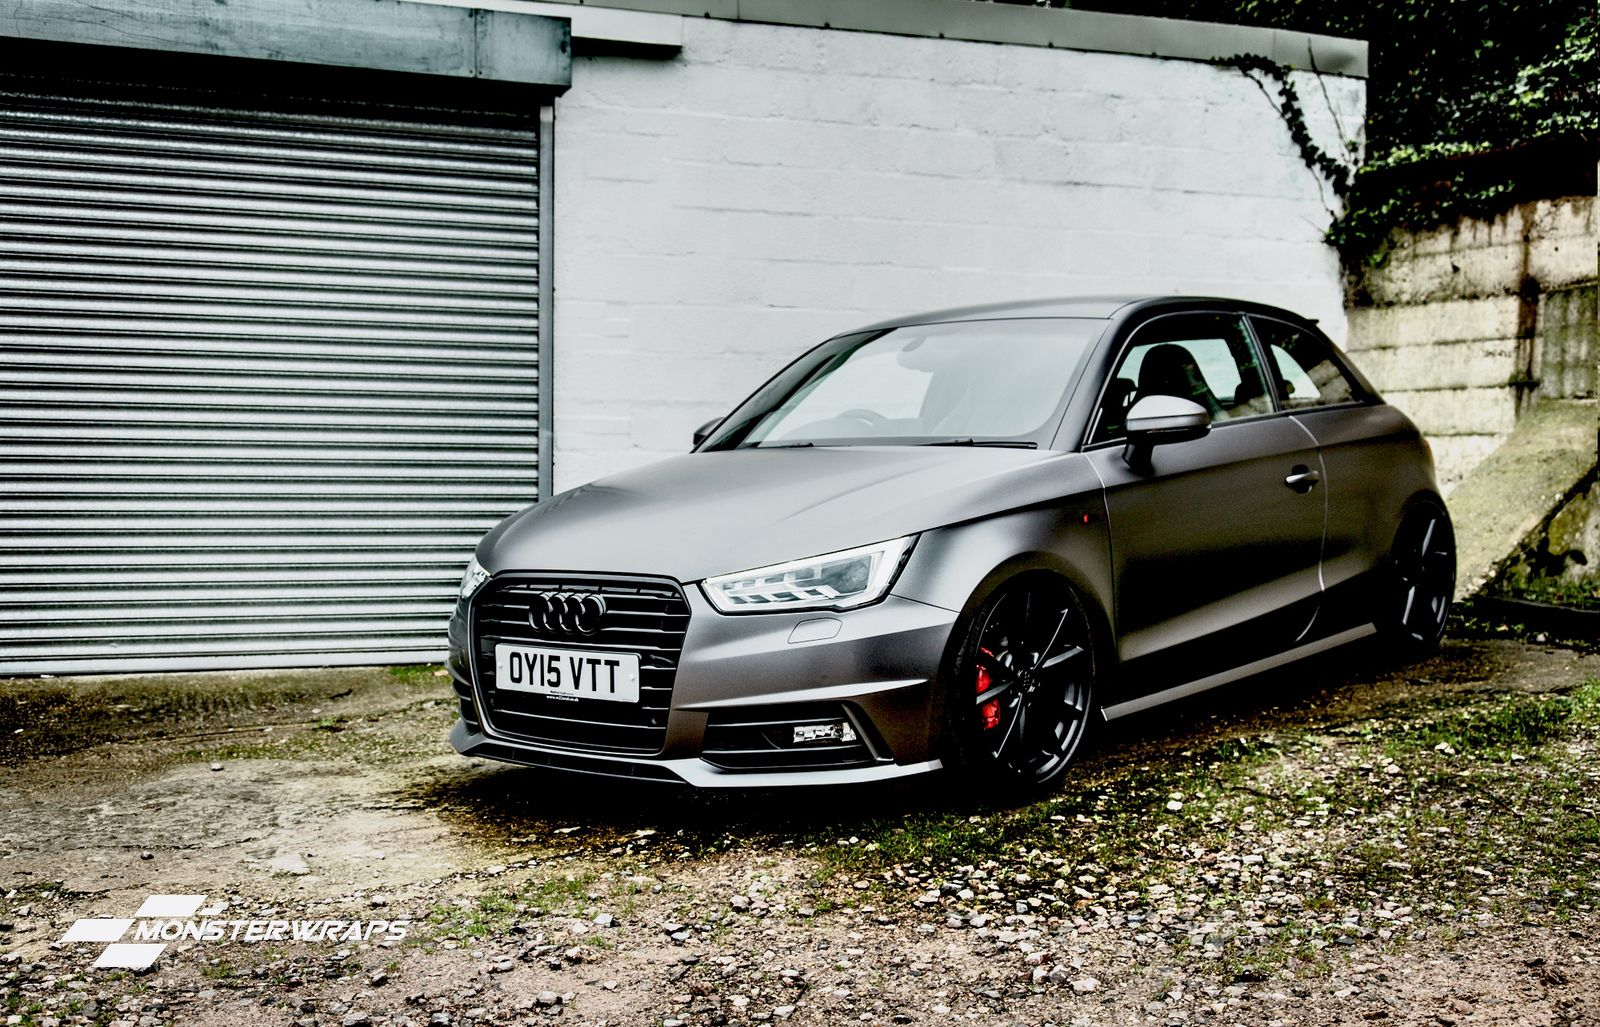 Audi A1 Satin Dark Grey Full Wrap Audi A1 Audi Audi Cars